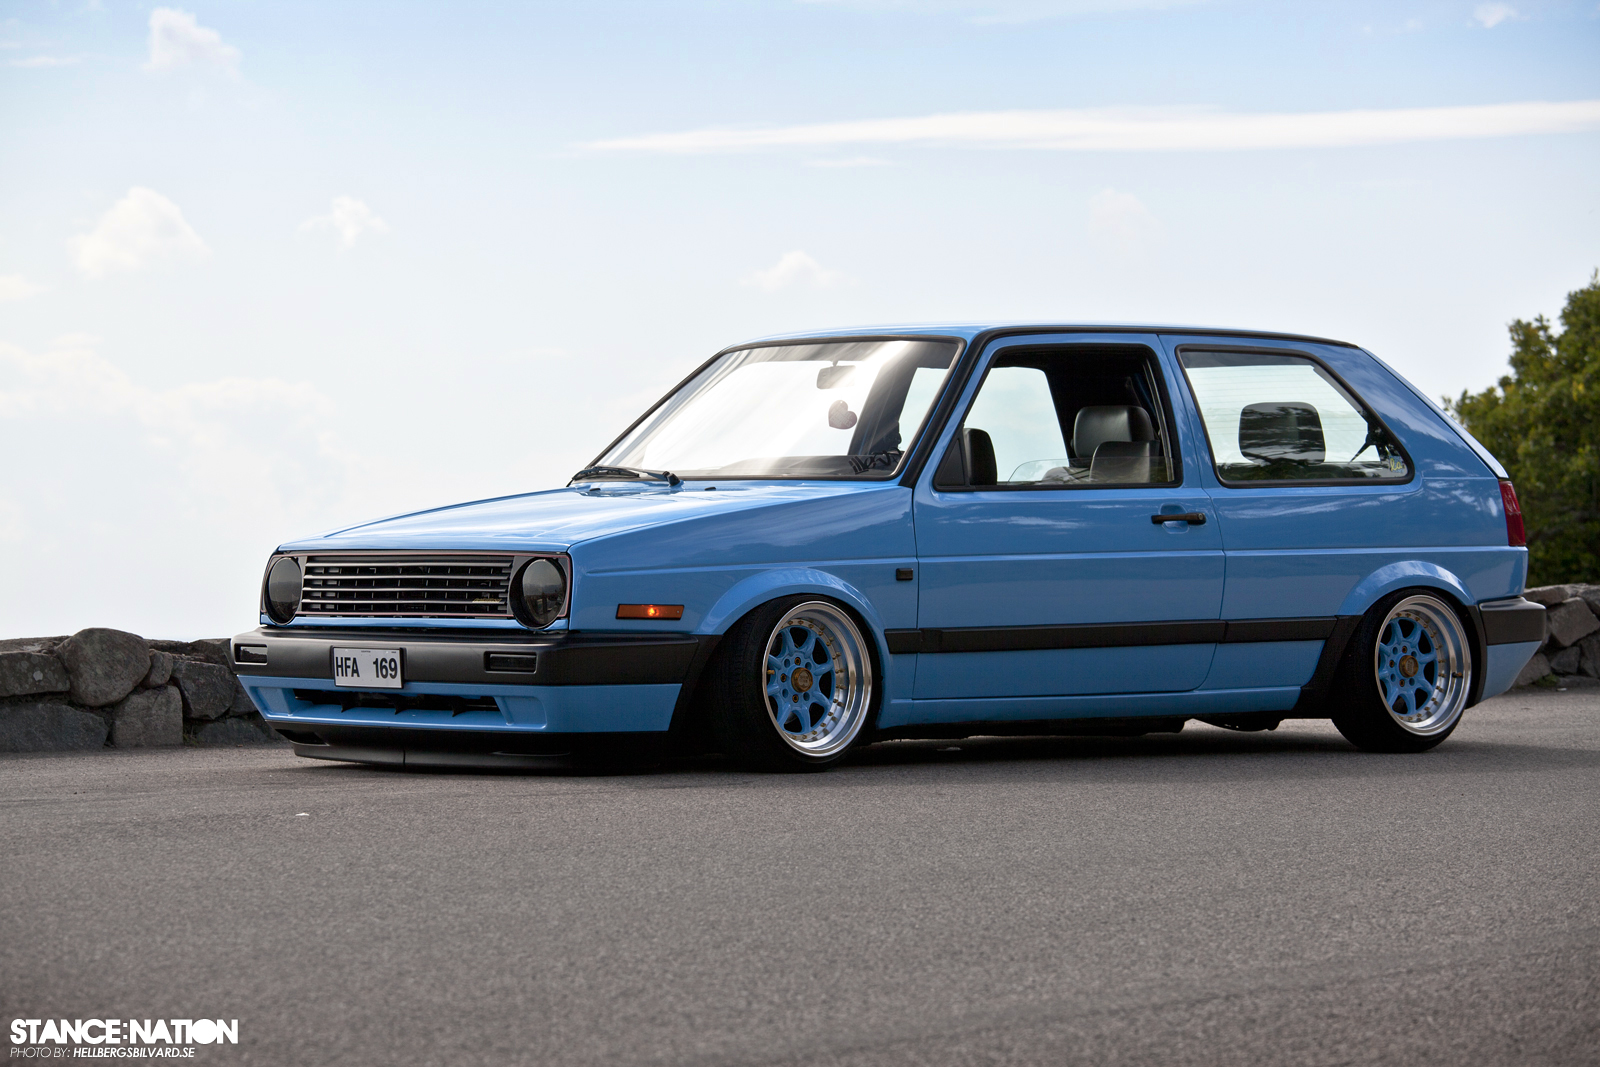 VW Golf Mk2 Low Static